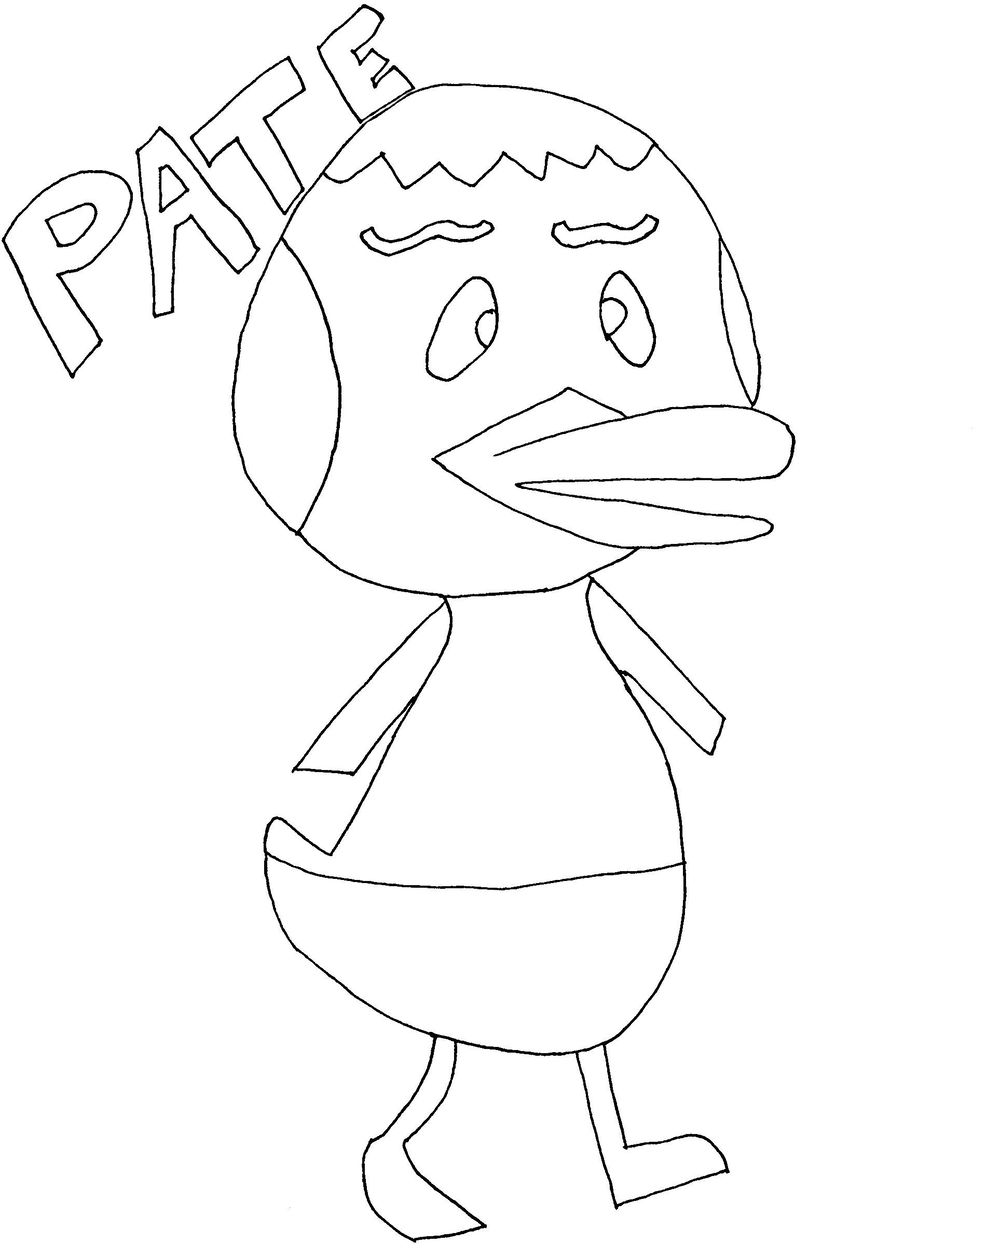 Animal Crossing Villager: Pate the Peppy Duck - image 2 - student project